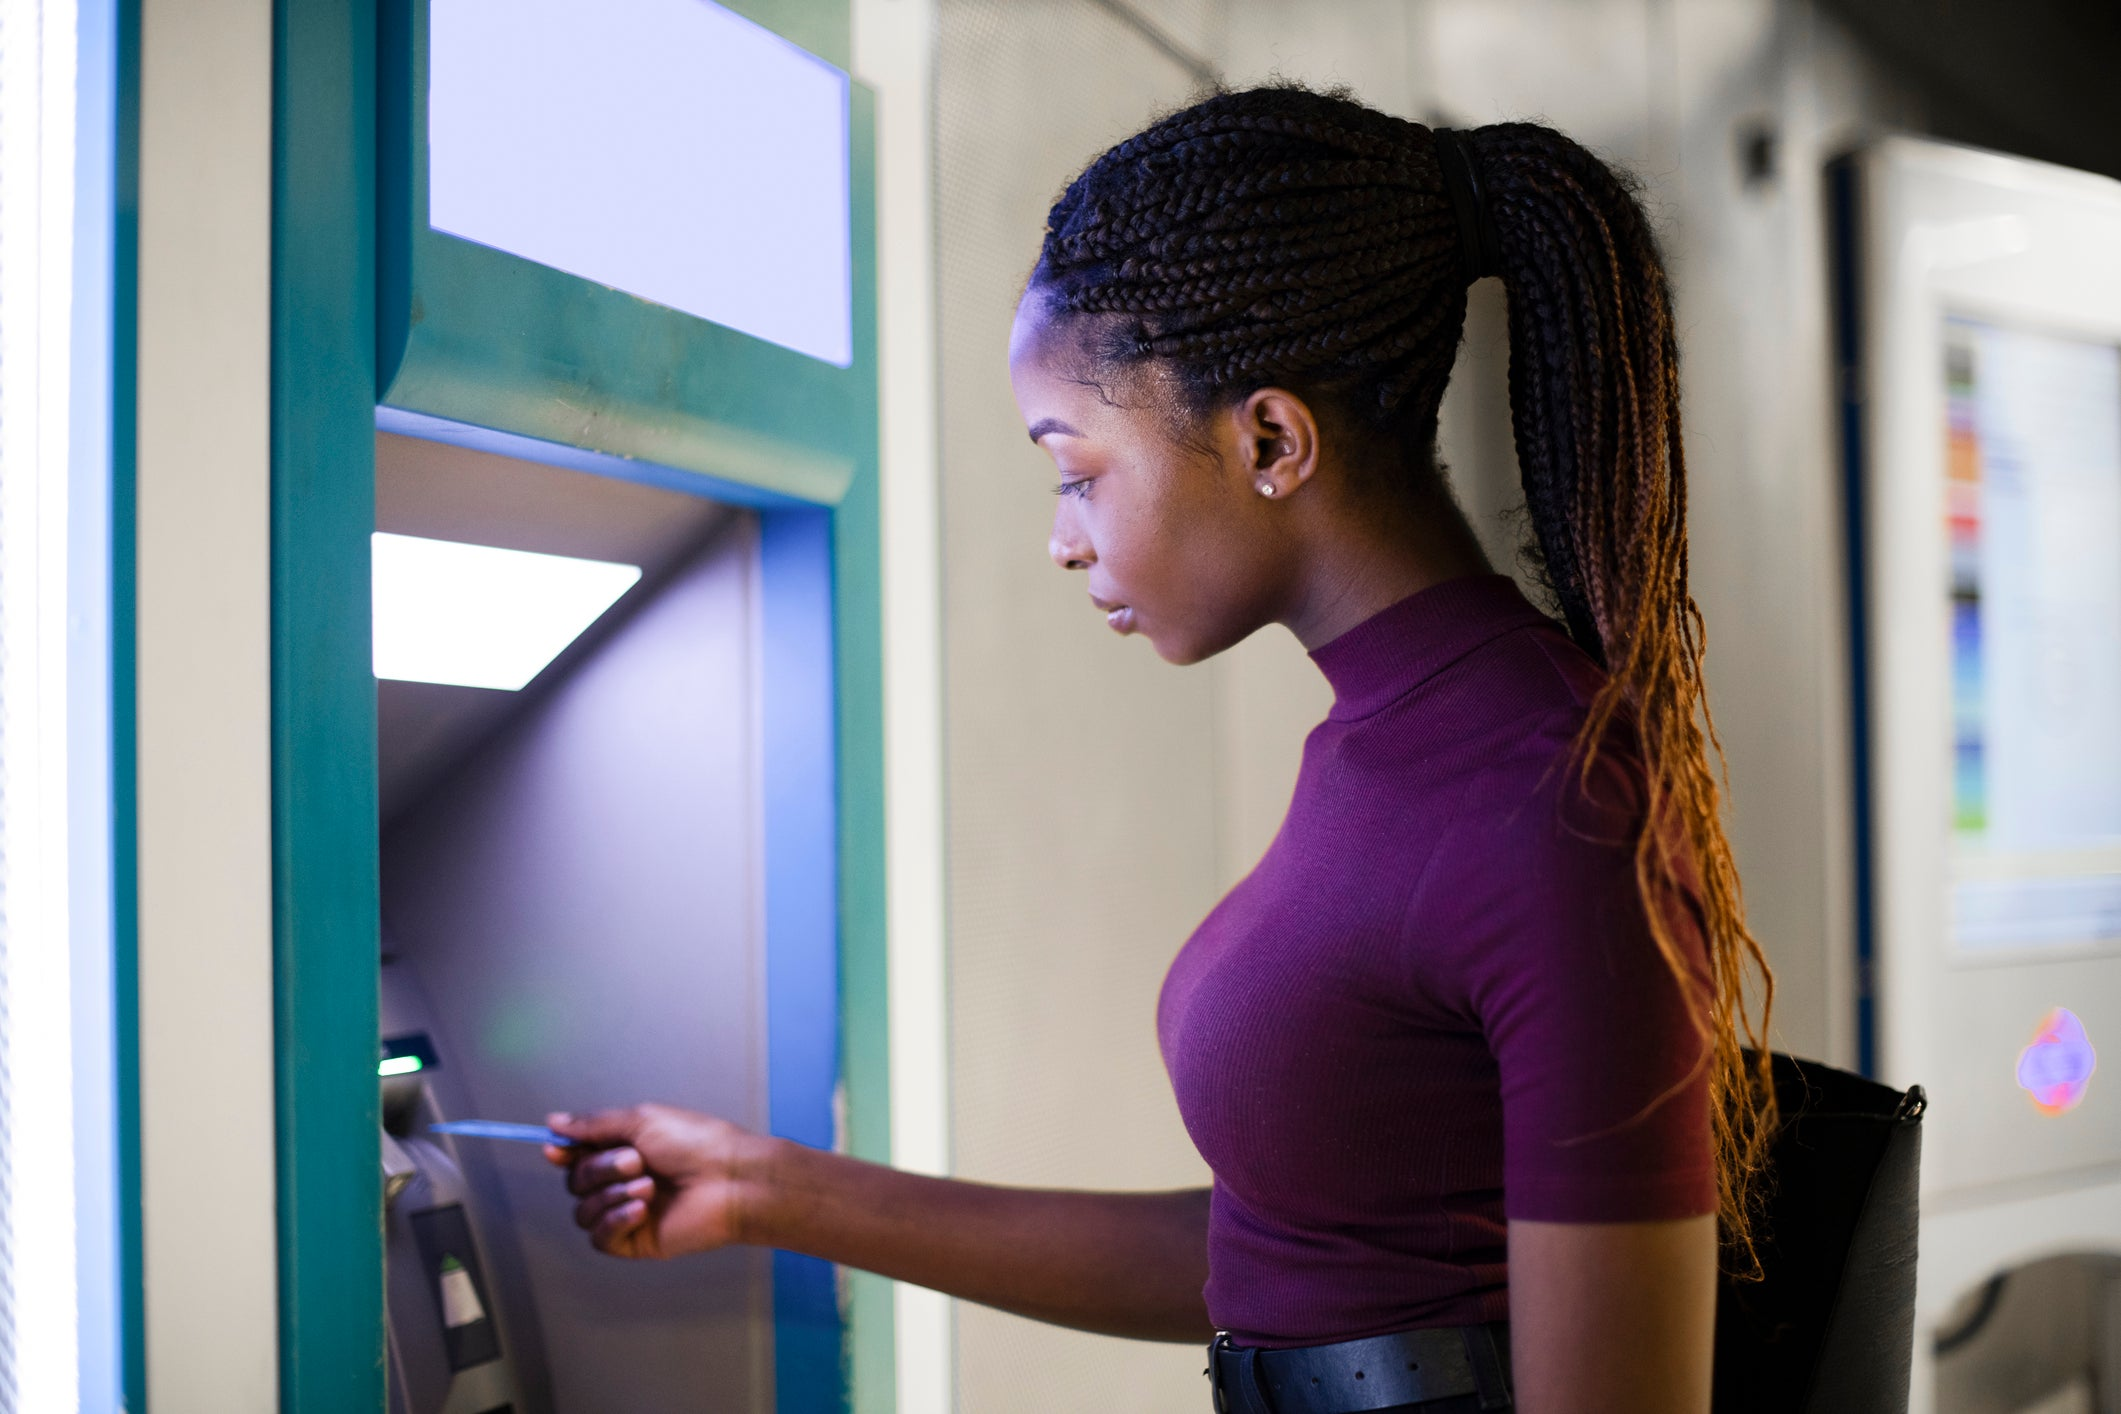 Woman uses ATM